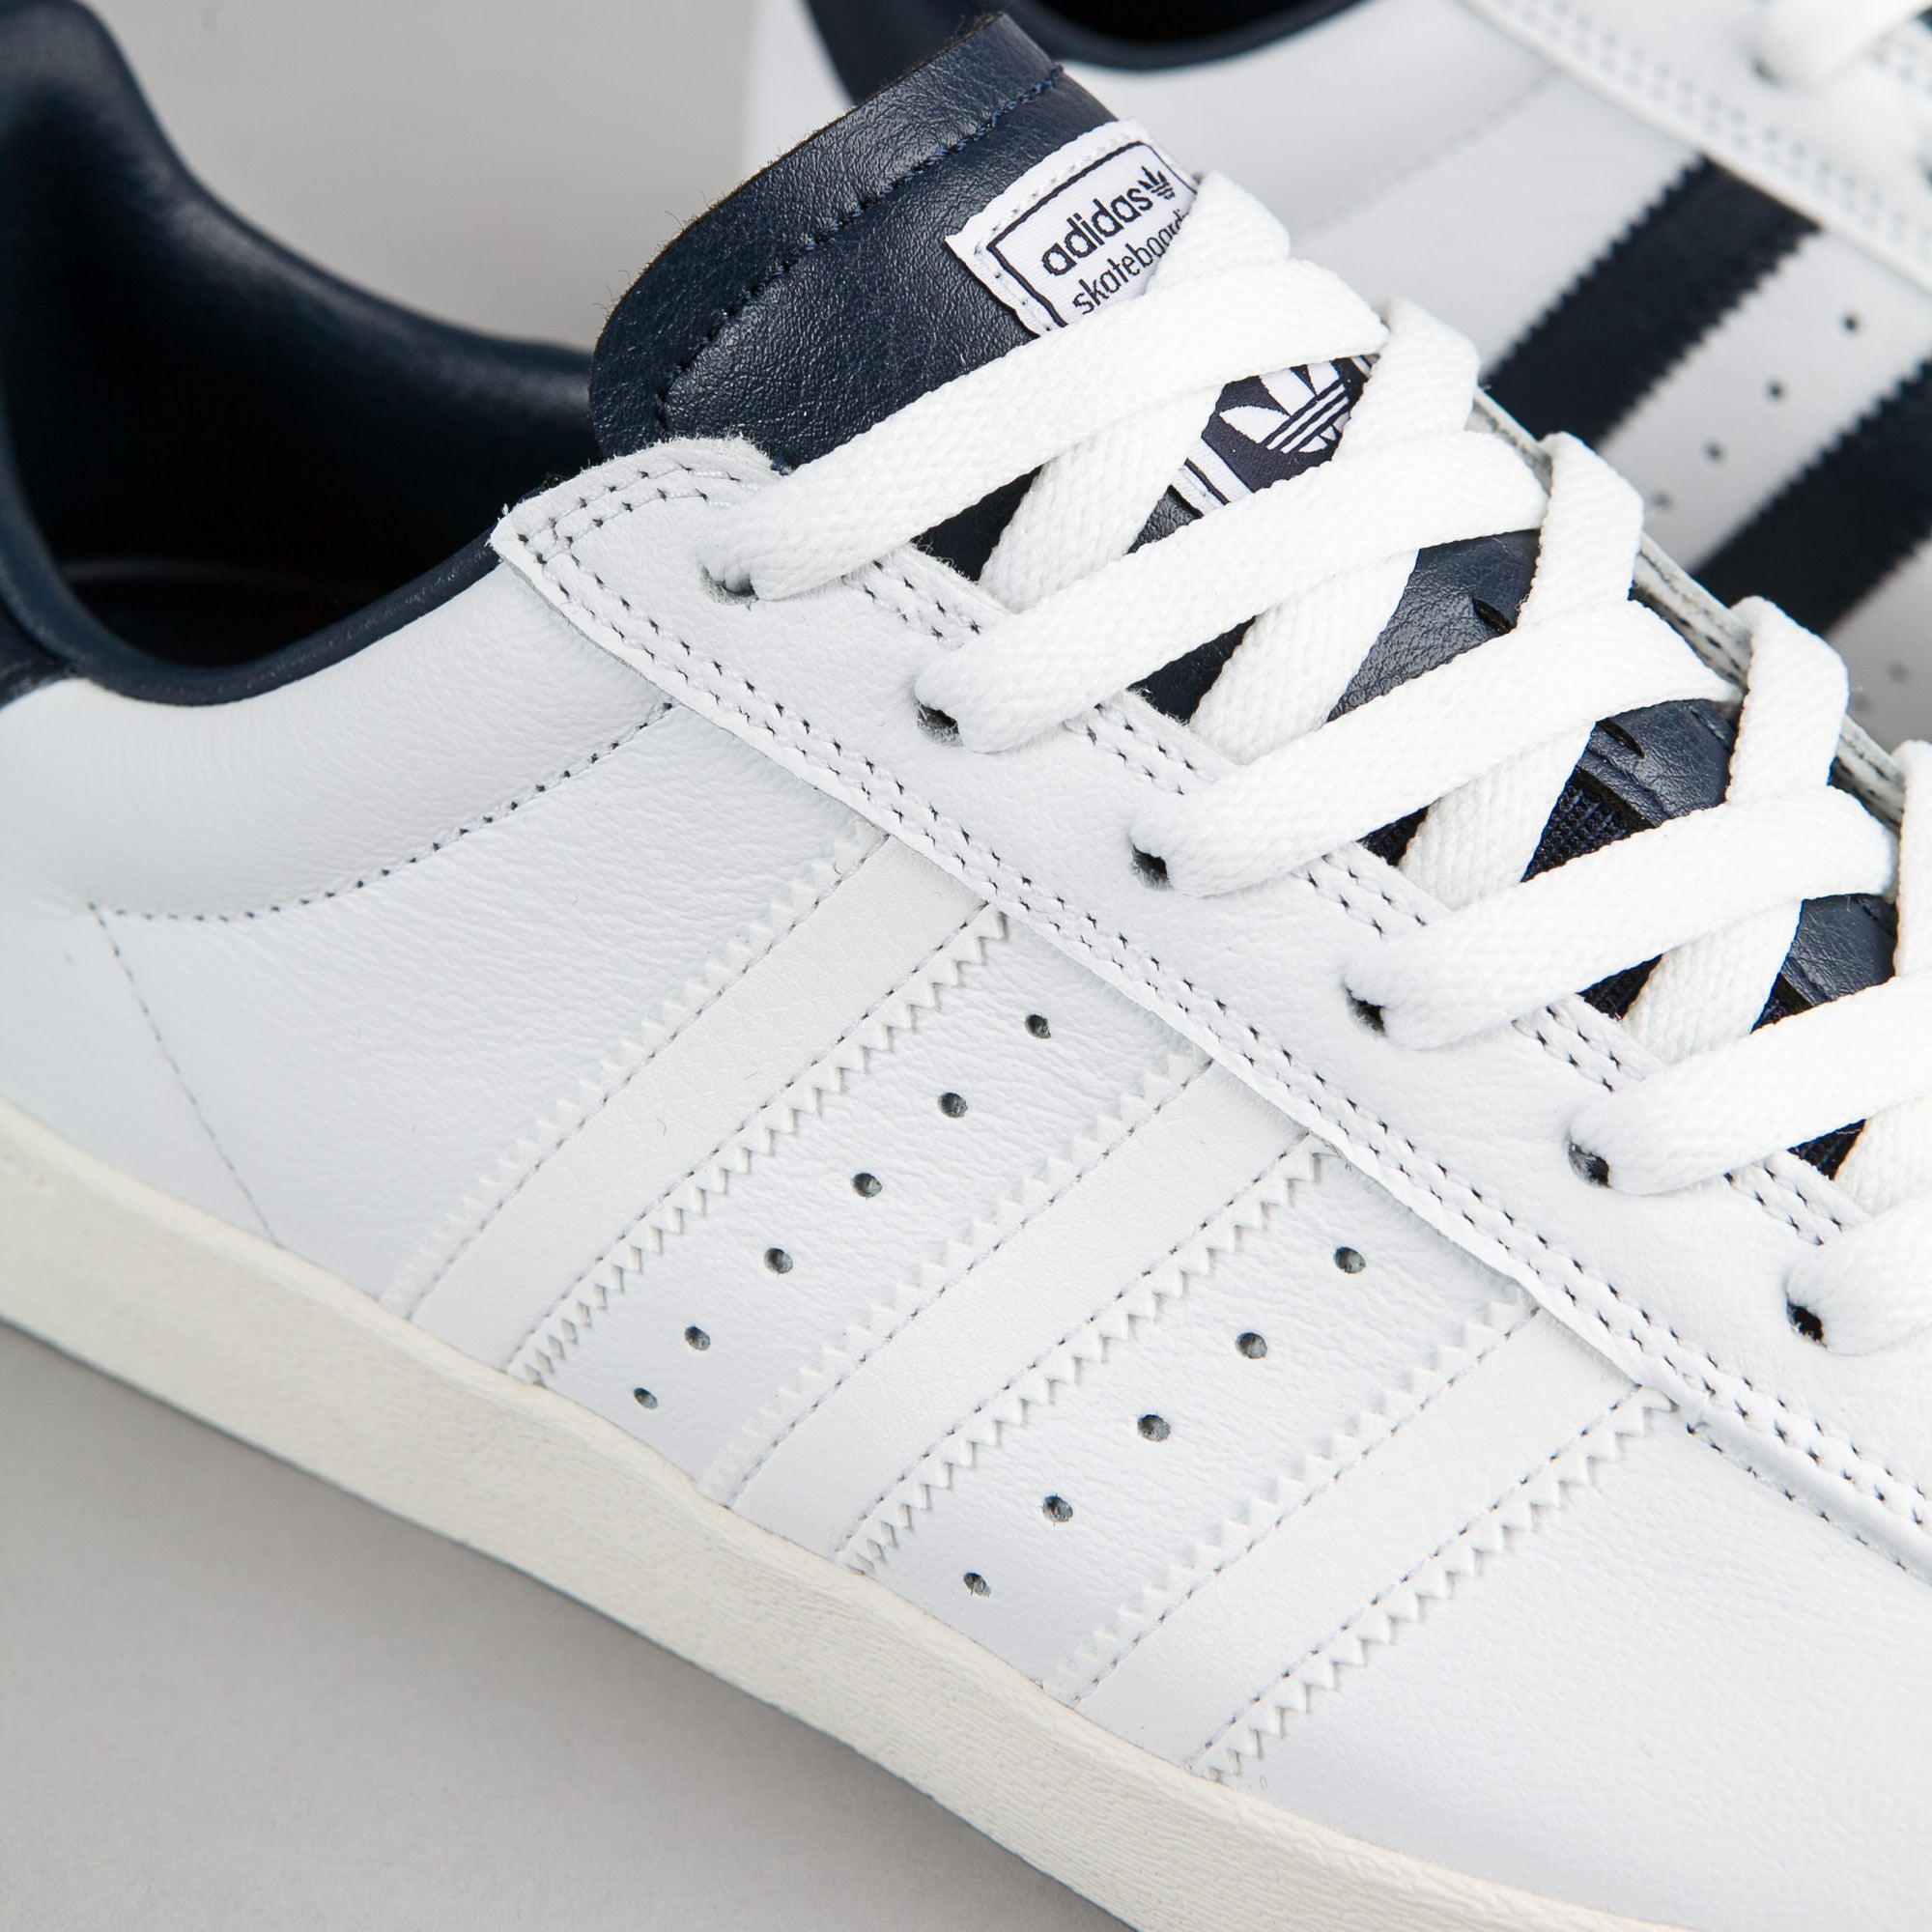 Cheap Adidas superstar vulc adv crystal white / white / camo geen